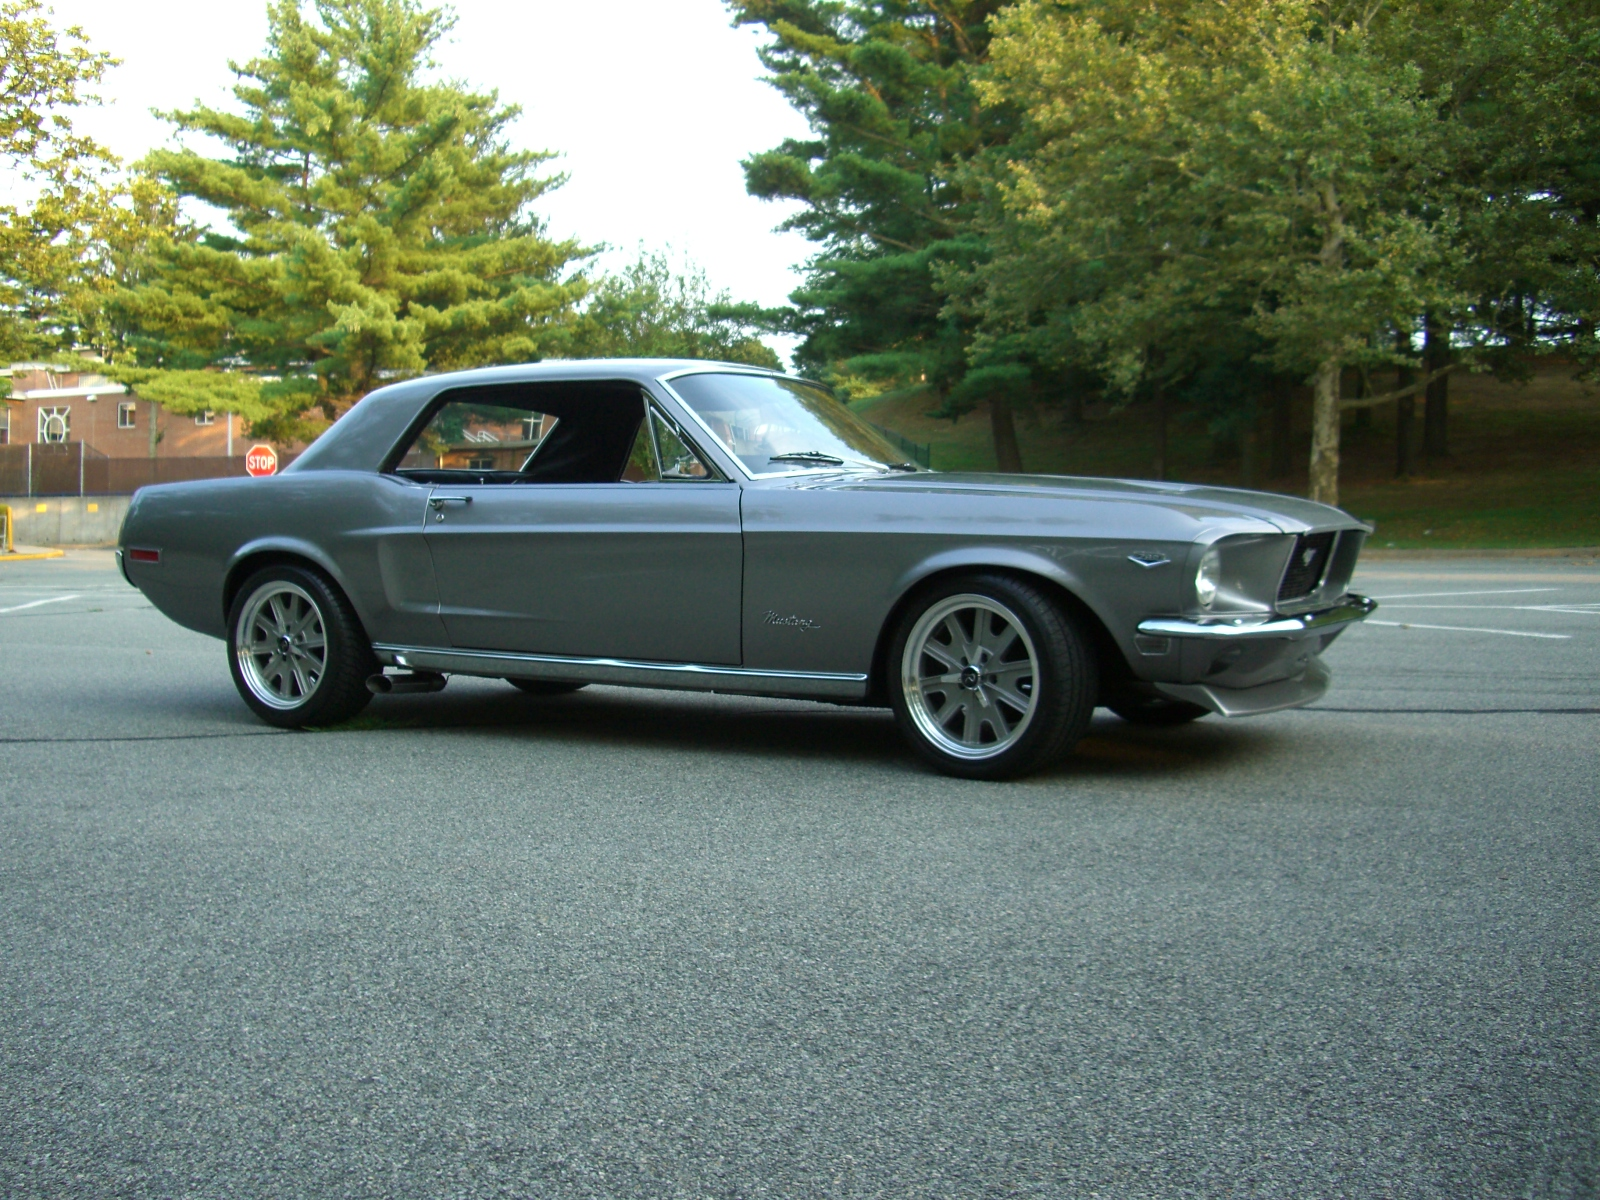 1968 Ford Mustang Coupe Restomod | Flickr - Photo Sharing!